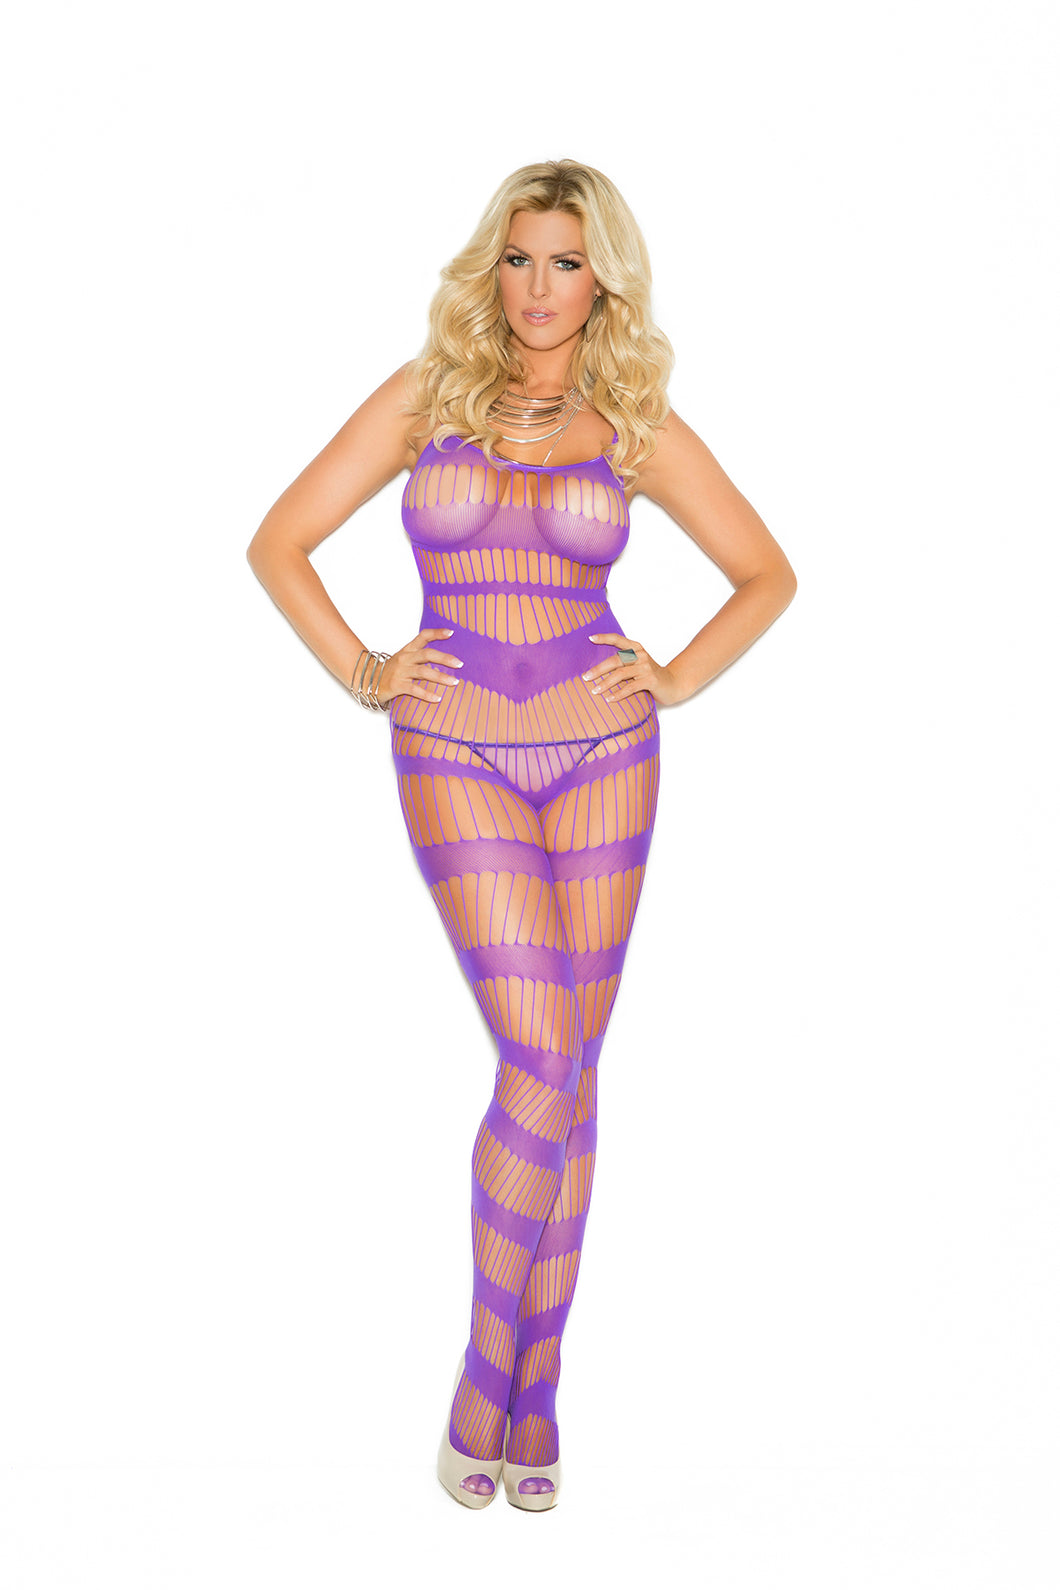 Strappy Body Stocking - Queen Size - Purple EM-1658Q